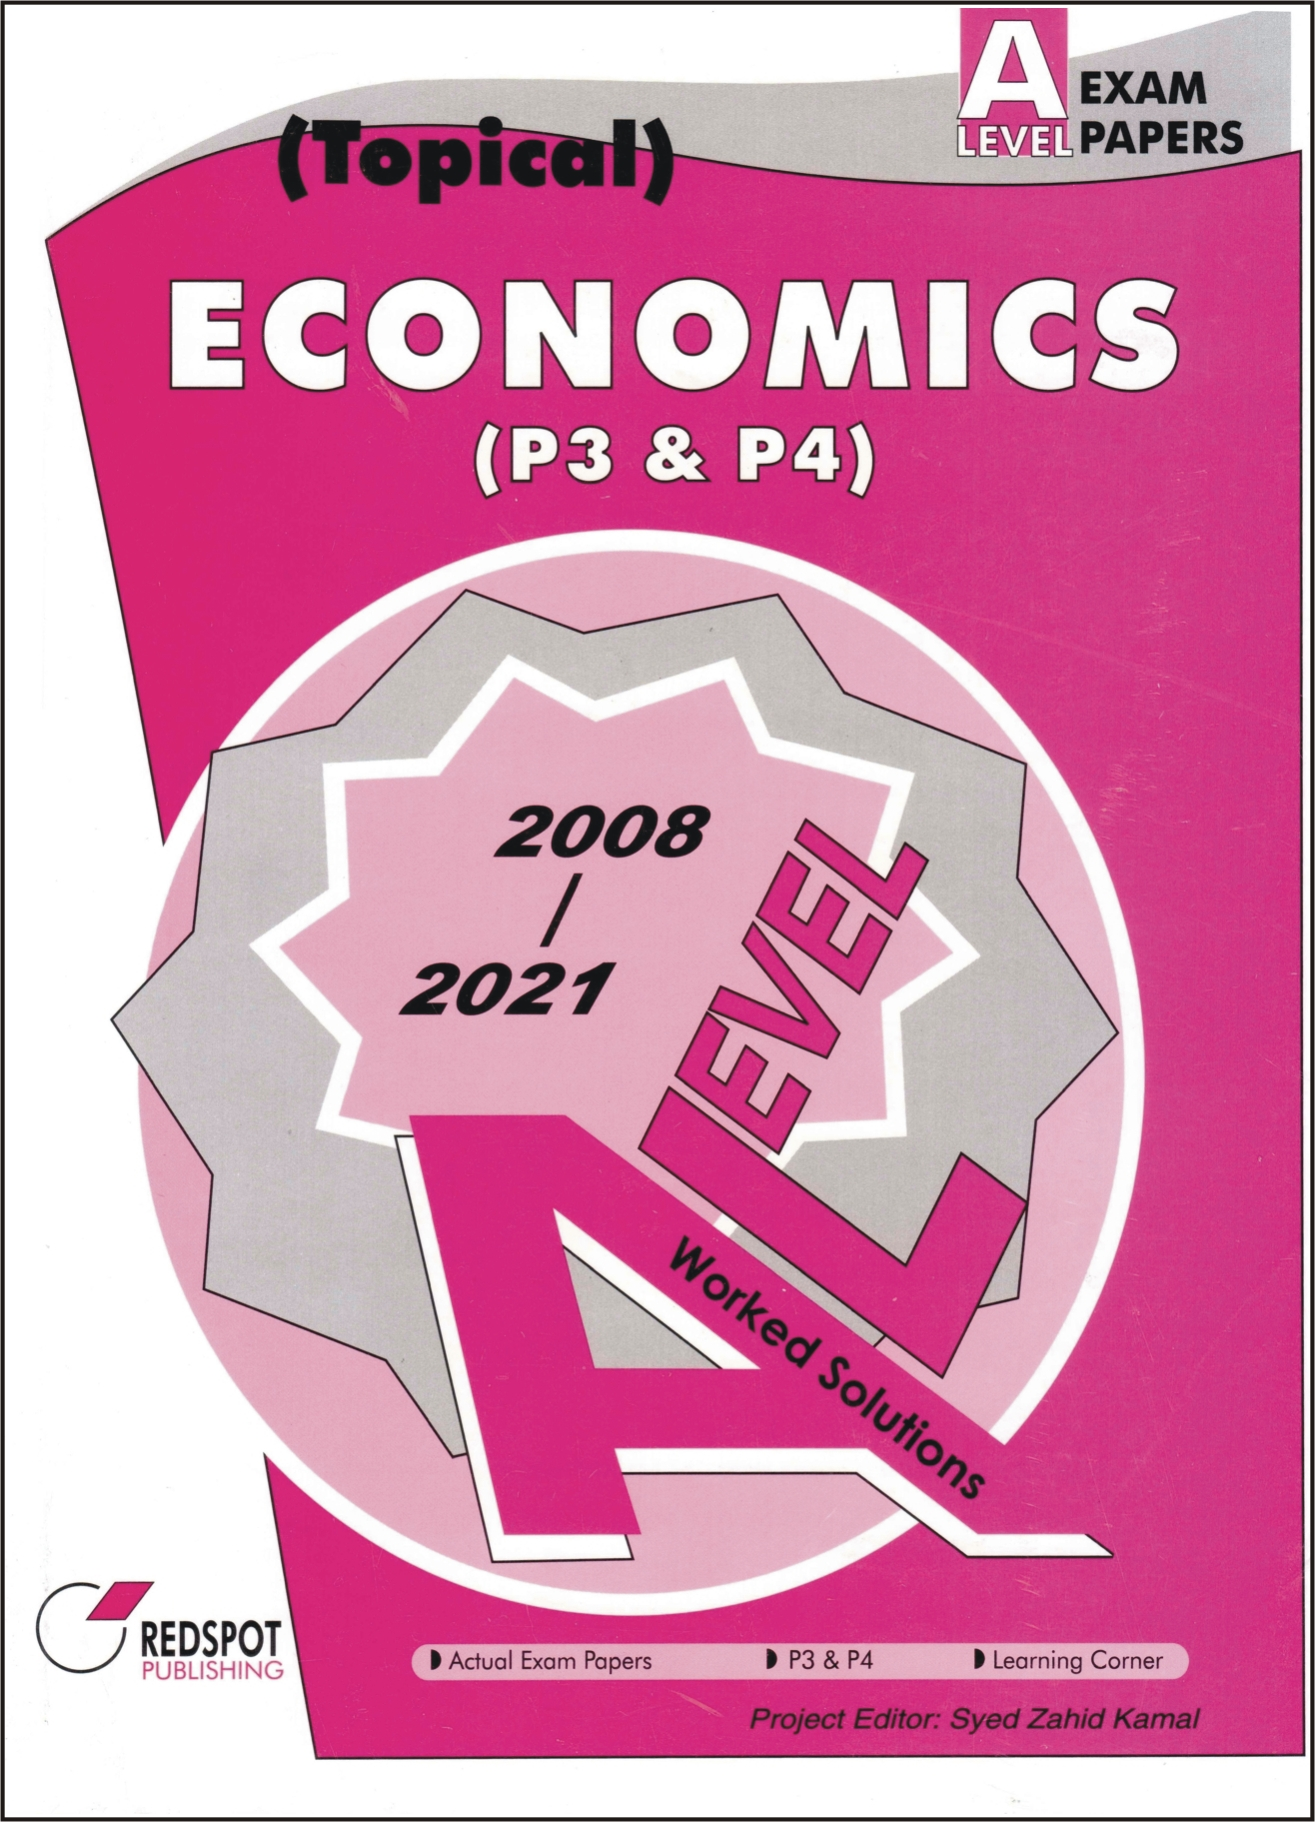 Accounting grd11 ebook array economics p1 june 2014 ebook rh economics p1 june 2014 ebook bsop us fandeluxe Image collections